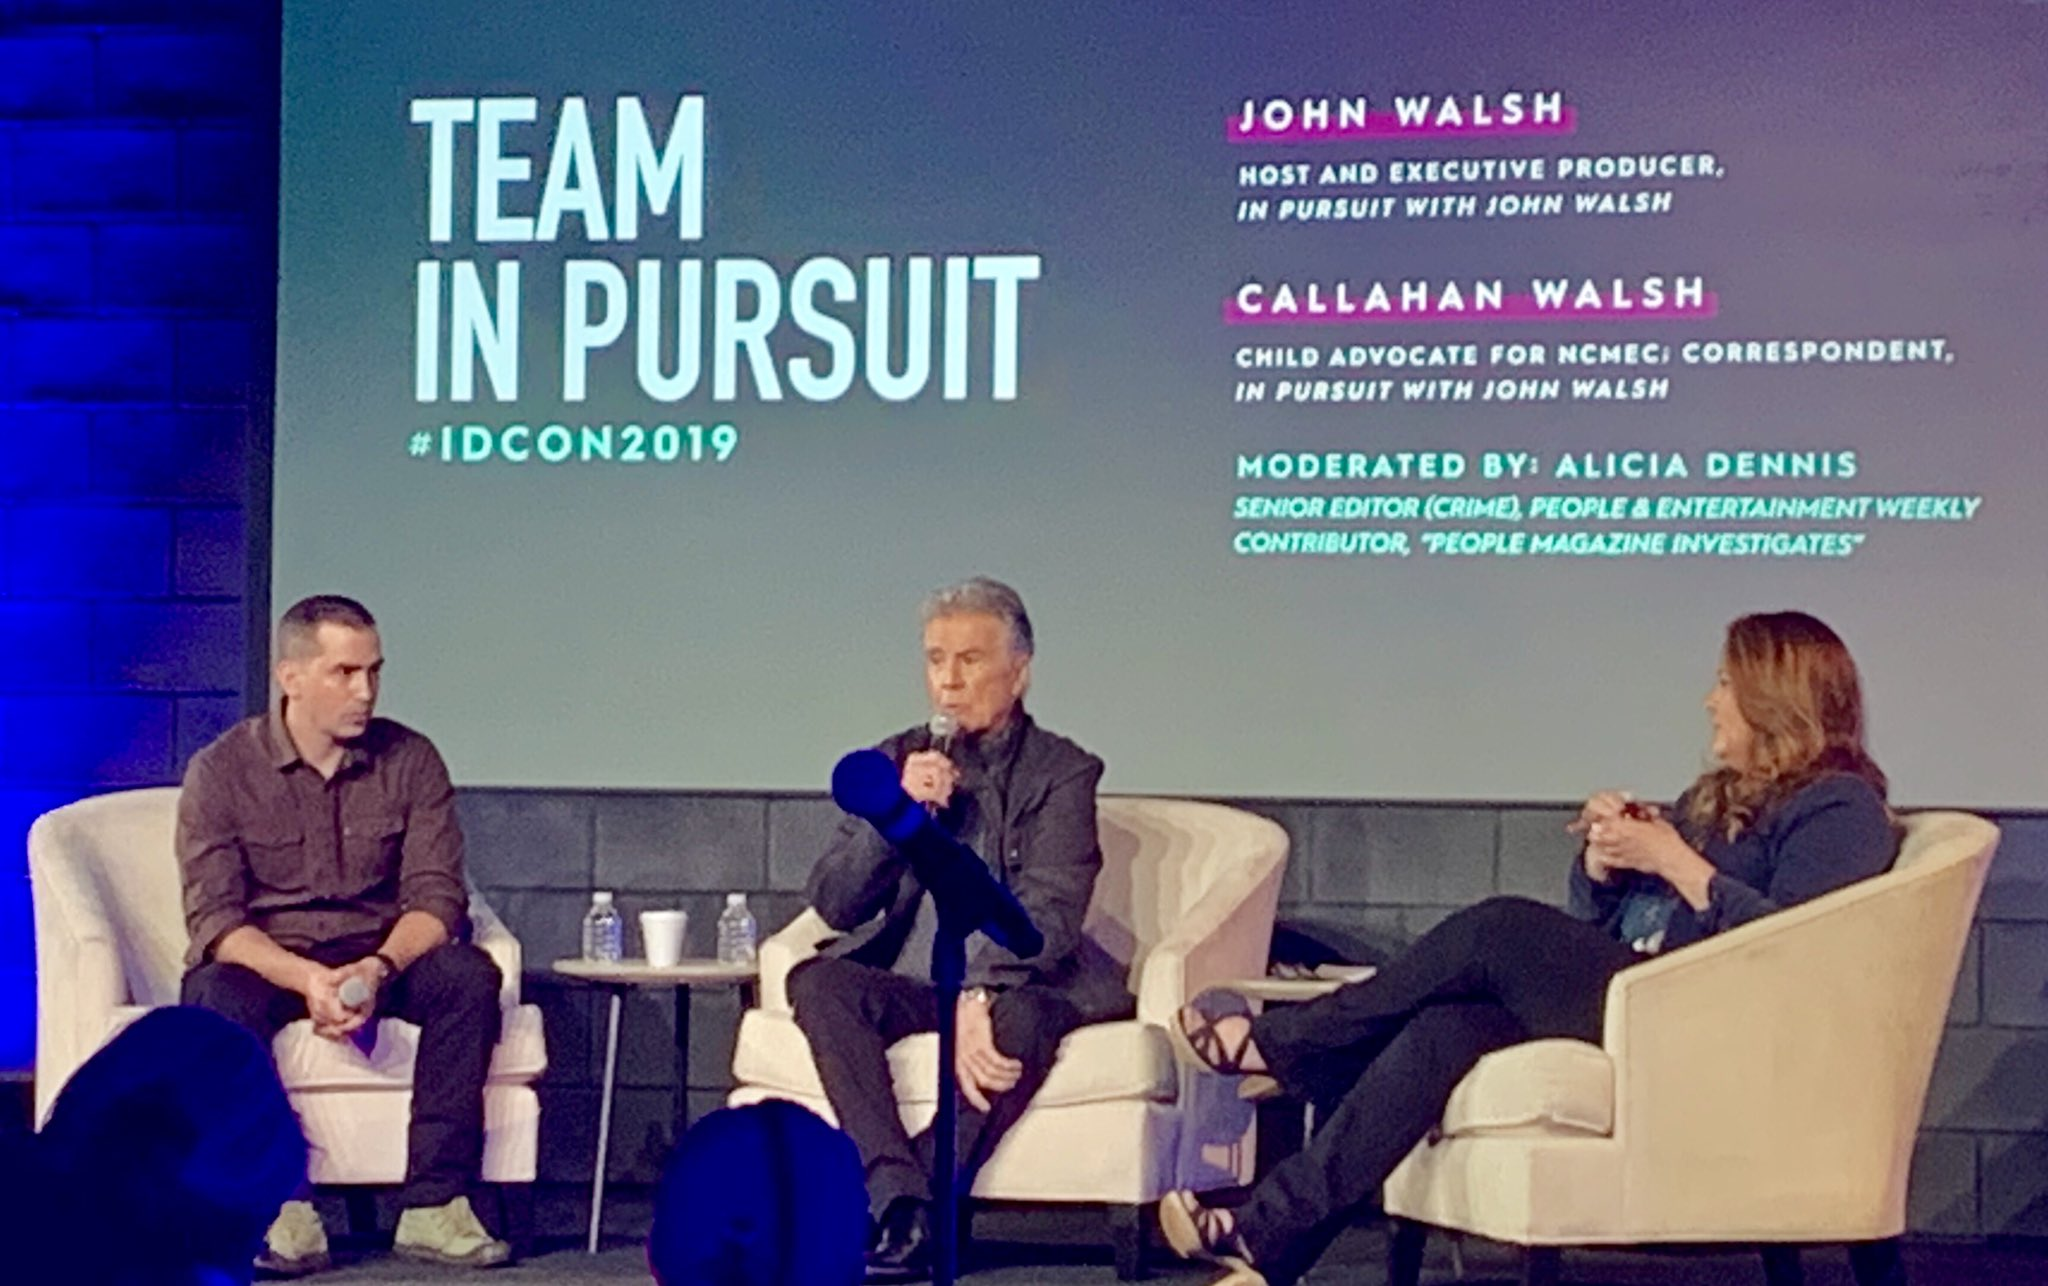 Callahan Walsh On Twitter It Was Great Seeing All The In Pursuit Fans At Idcon2019 Thanks For All The Support We Will Have Some Exciting News To Share Soon Teaminpursuit Discoveryid Https T Co Sfnains29o Последние твиты от callahan walsh (@callahanwalsh). twitter